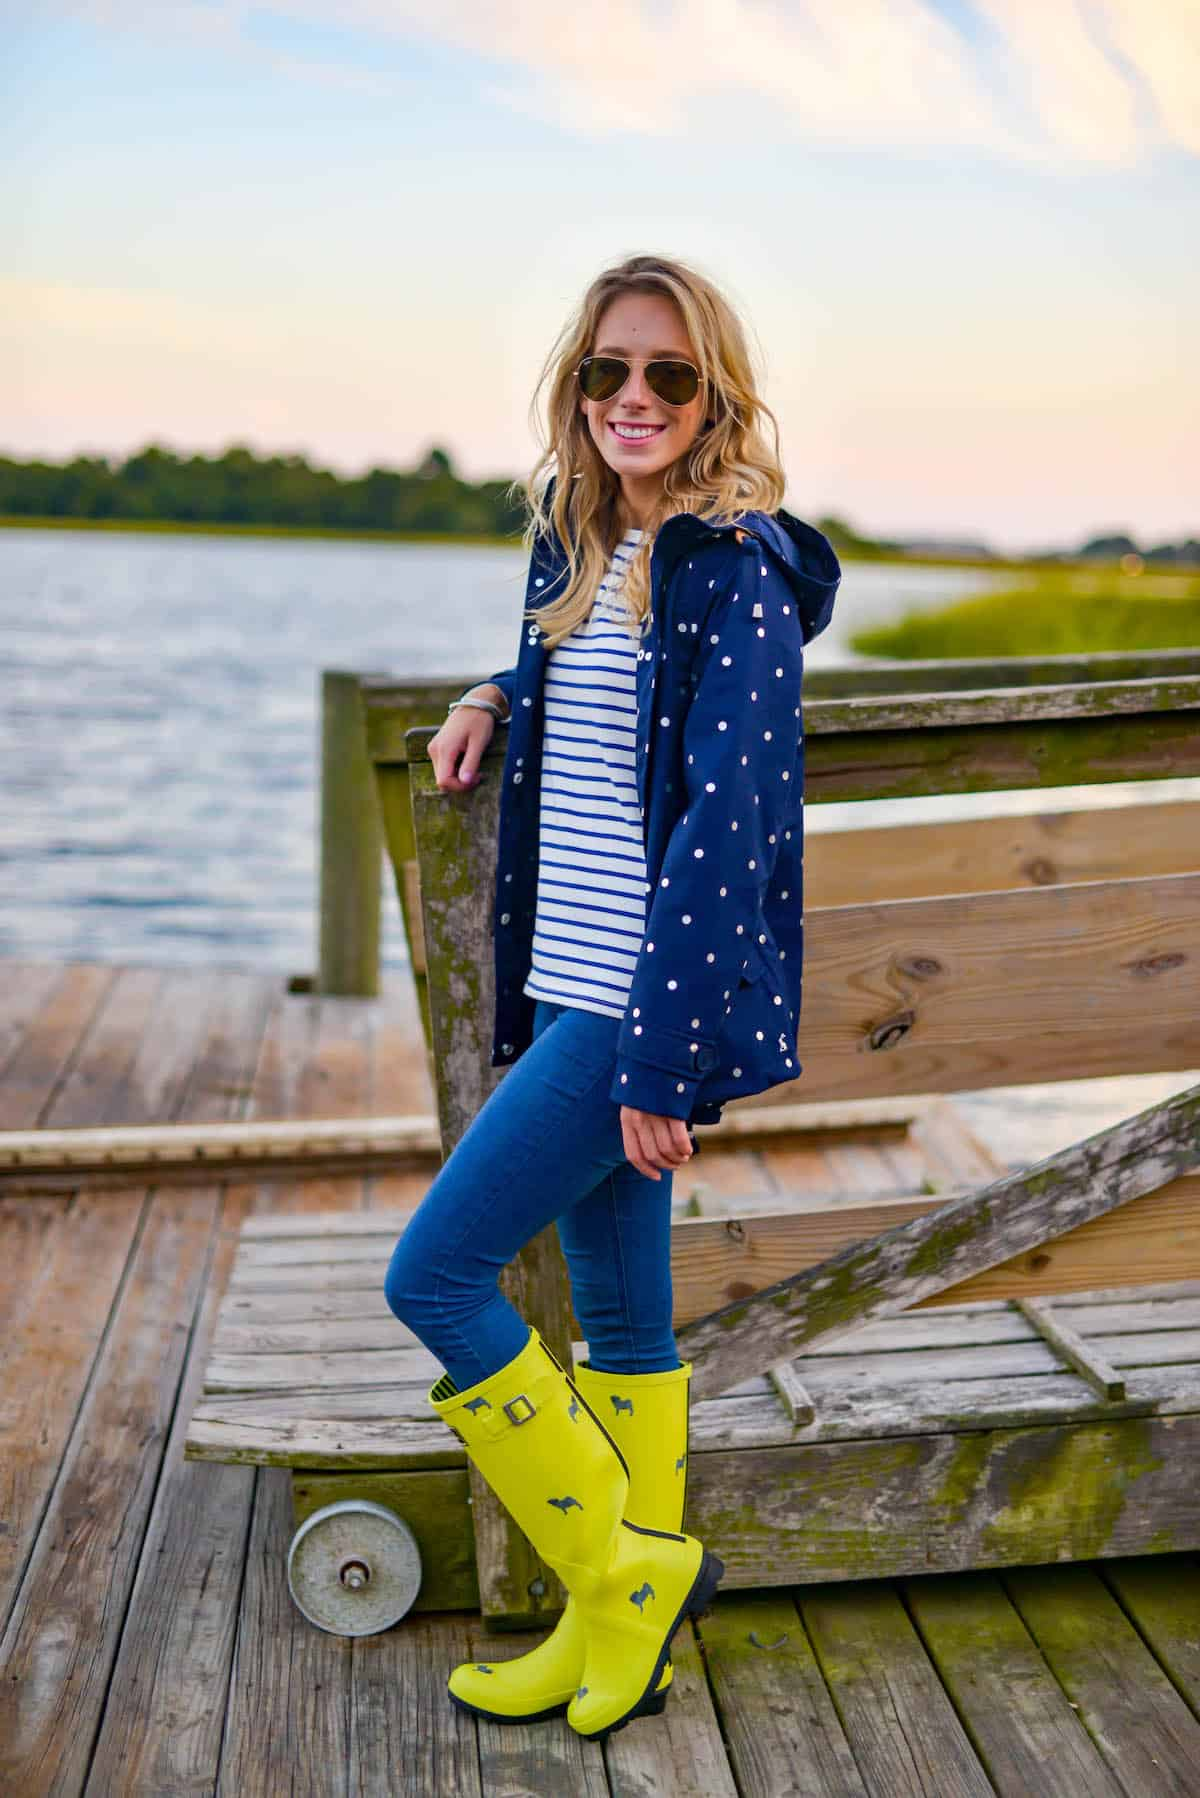 Wearing Joules At The Dock Katies Bliss